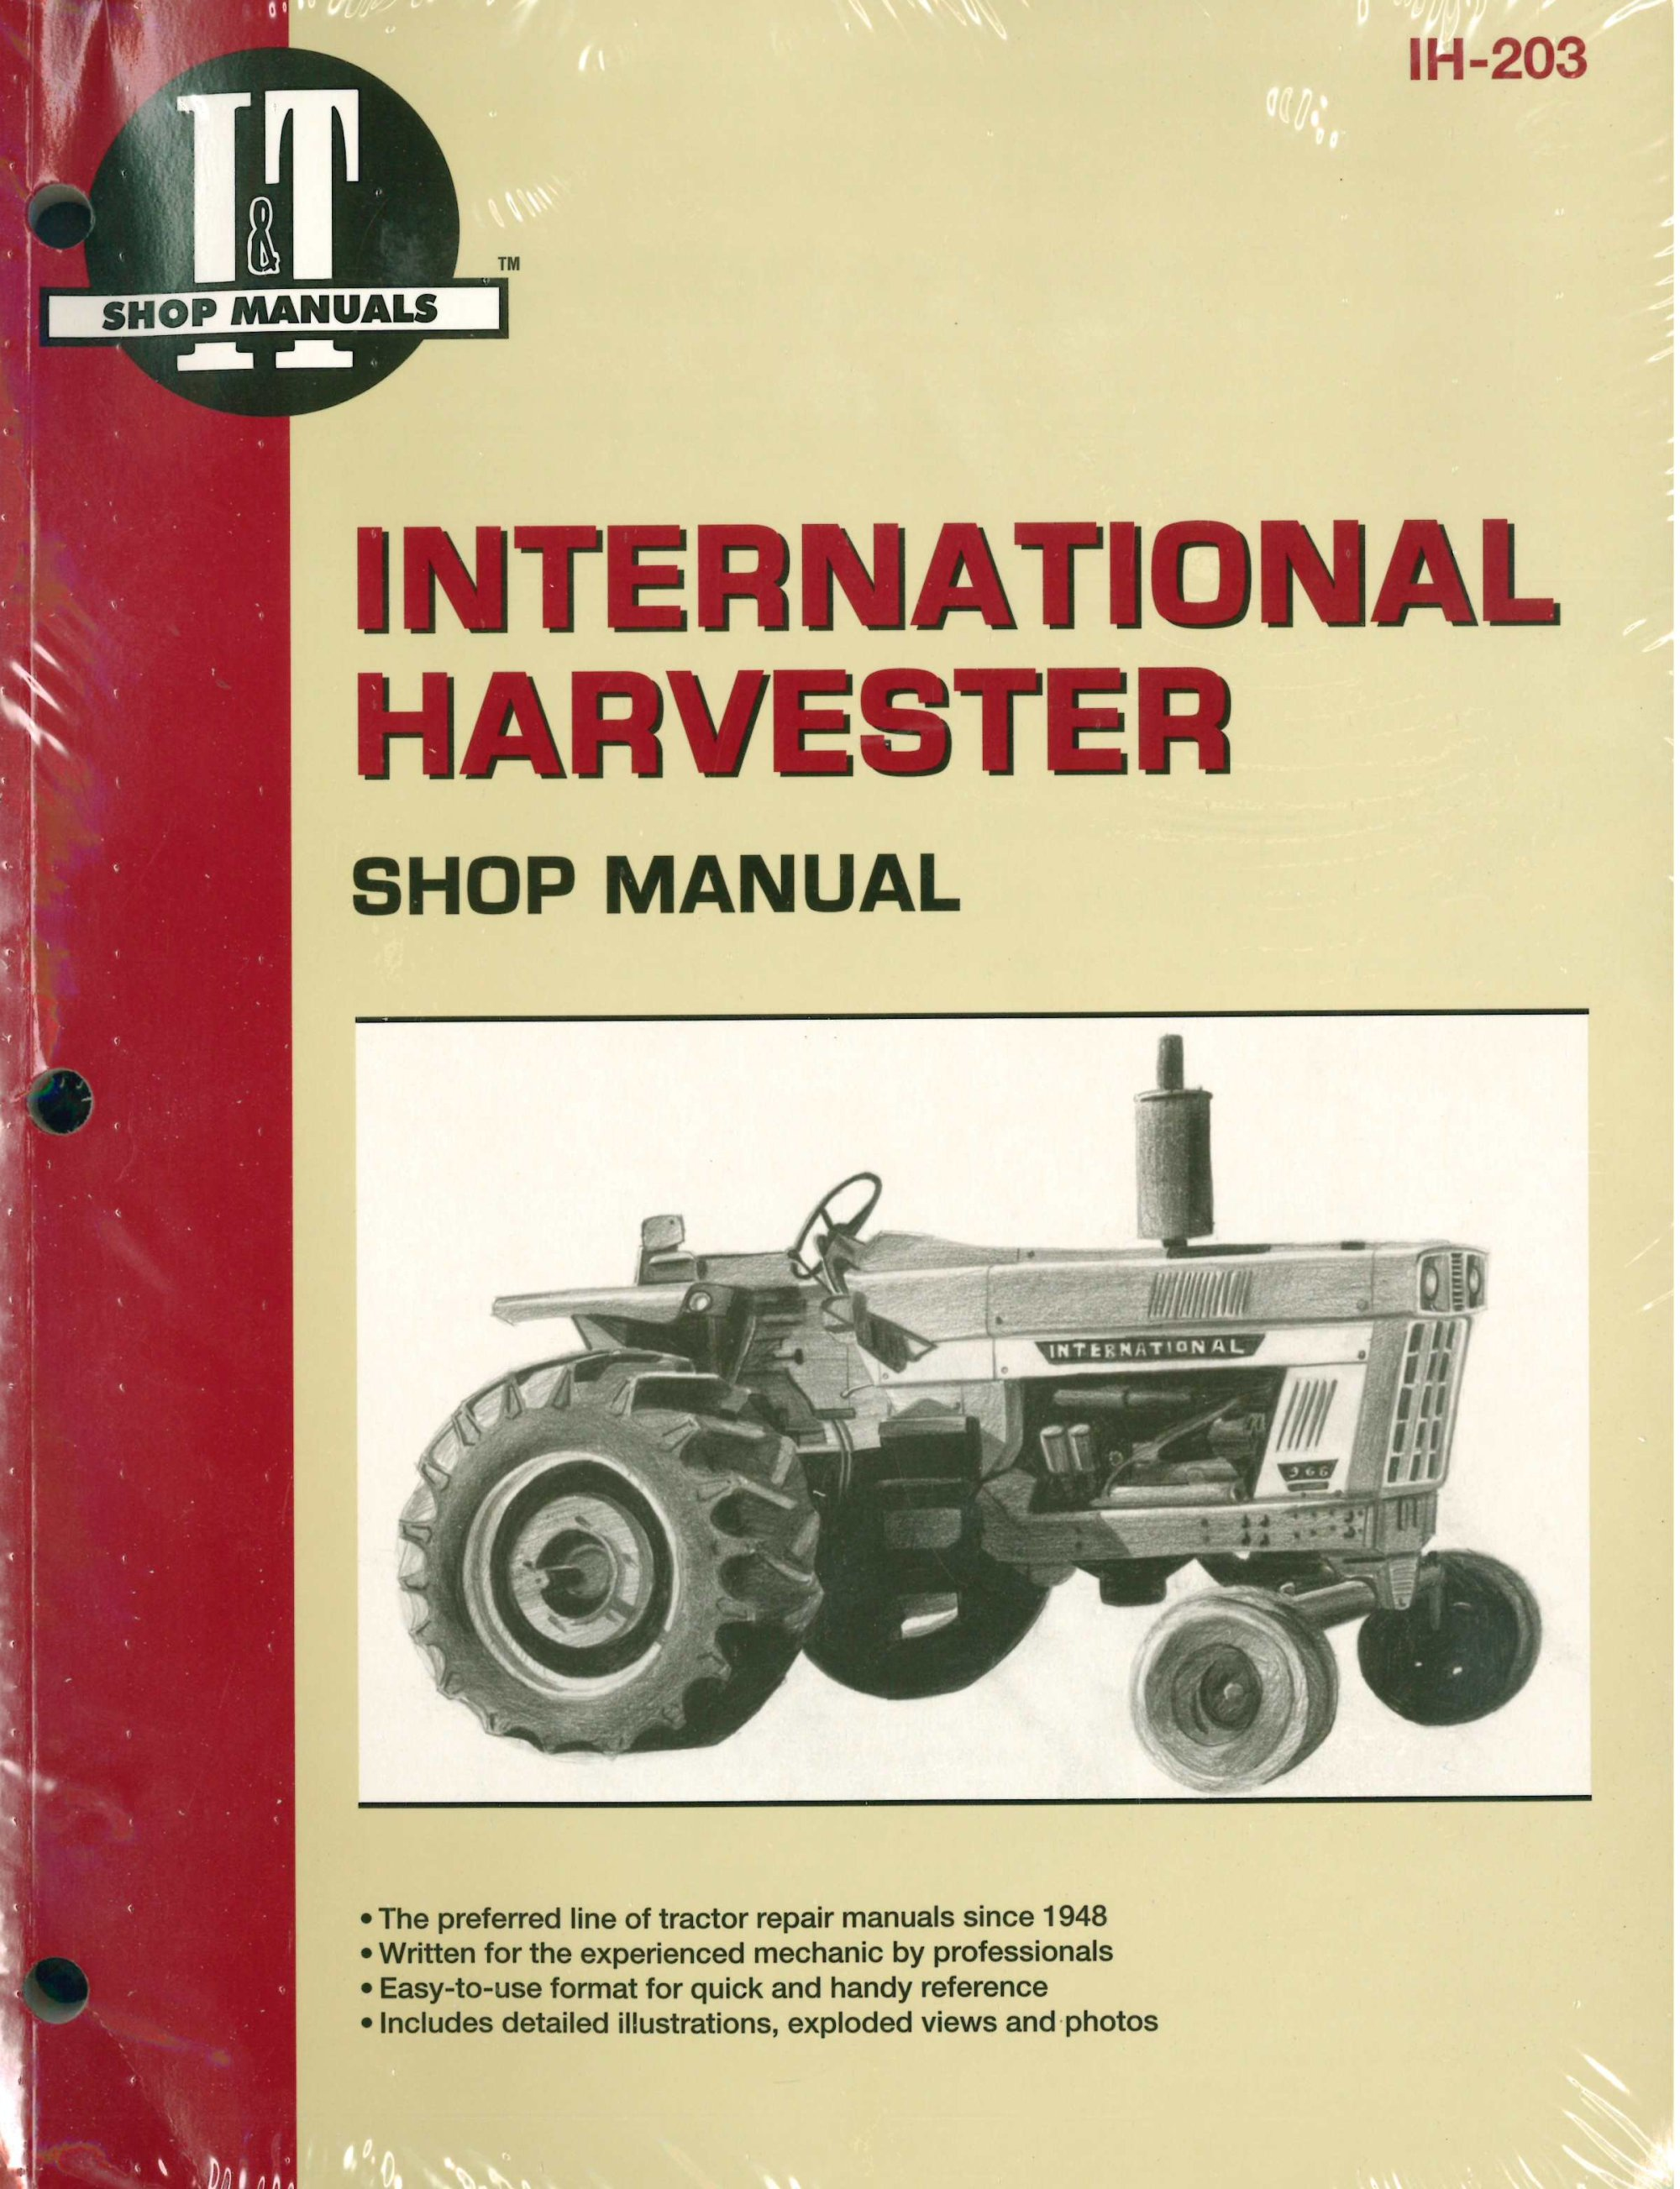 hight resolution of  international tractor wiring diagram international harvester tractor service manual 454 464 484 574 584 674 766 786 826 886 966